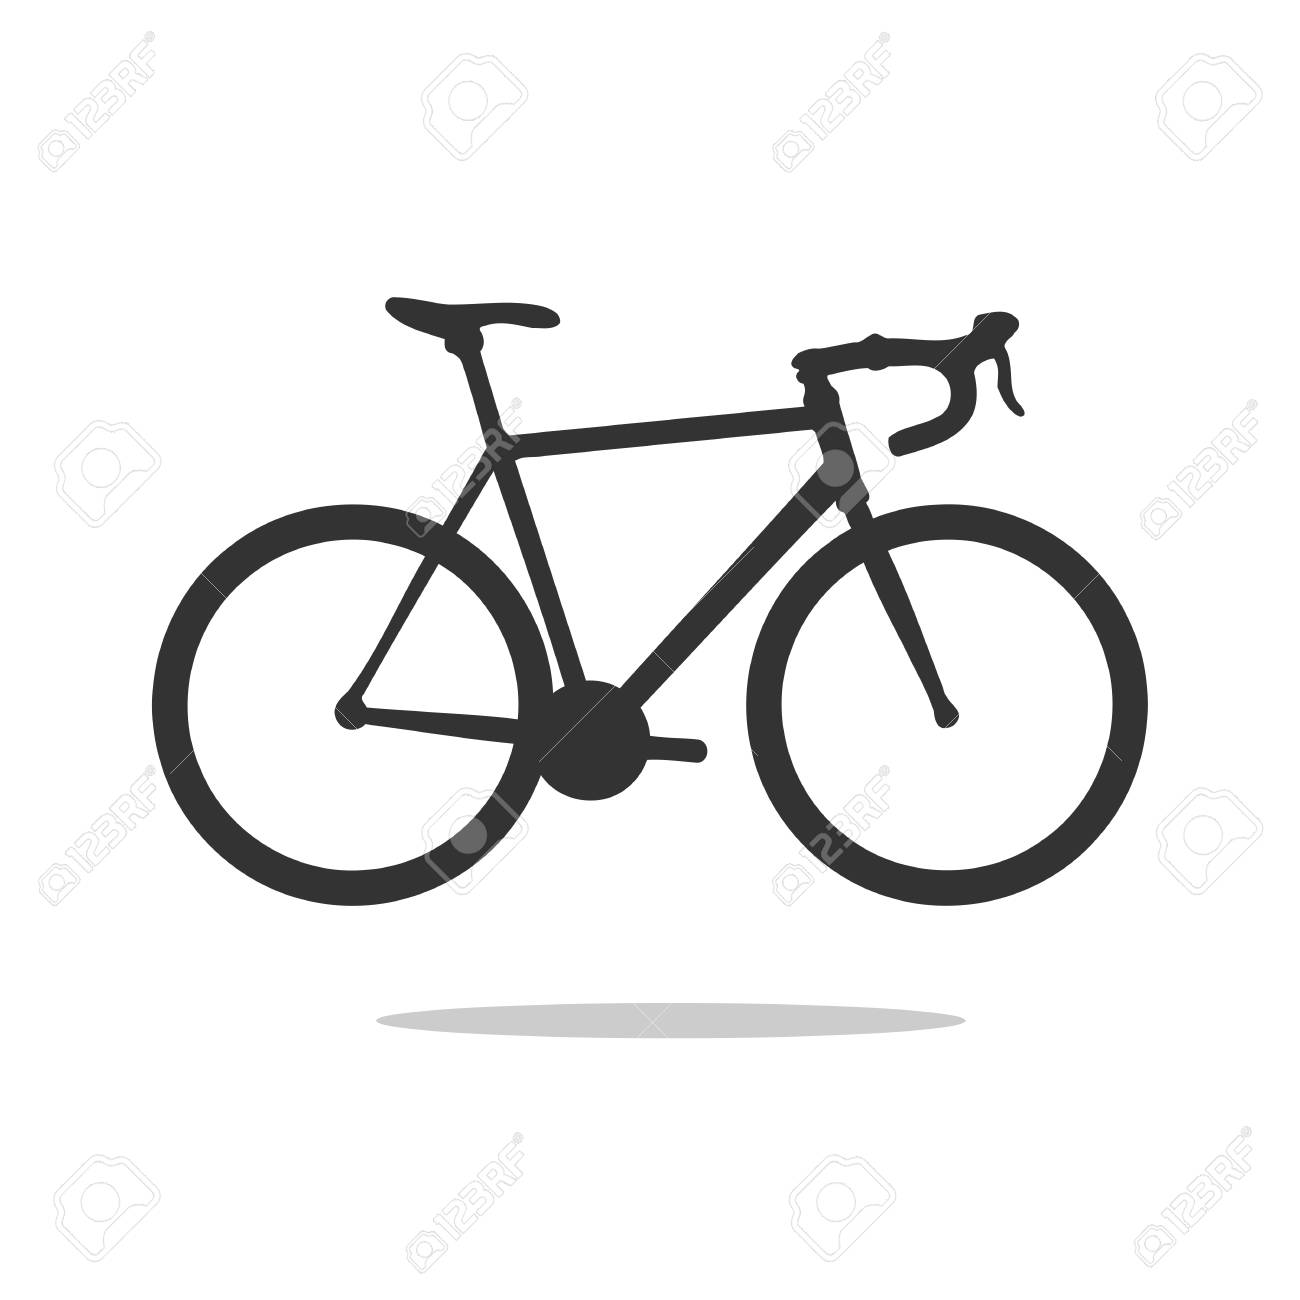 road bike silhouette, detailed vector illustration. vector road bicycle icon. - 97404739